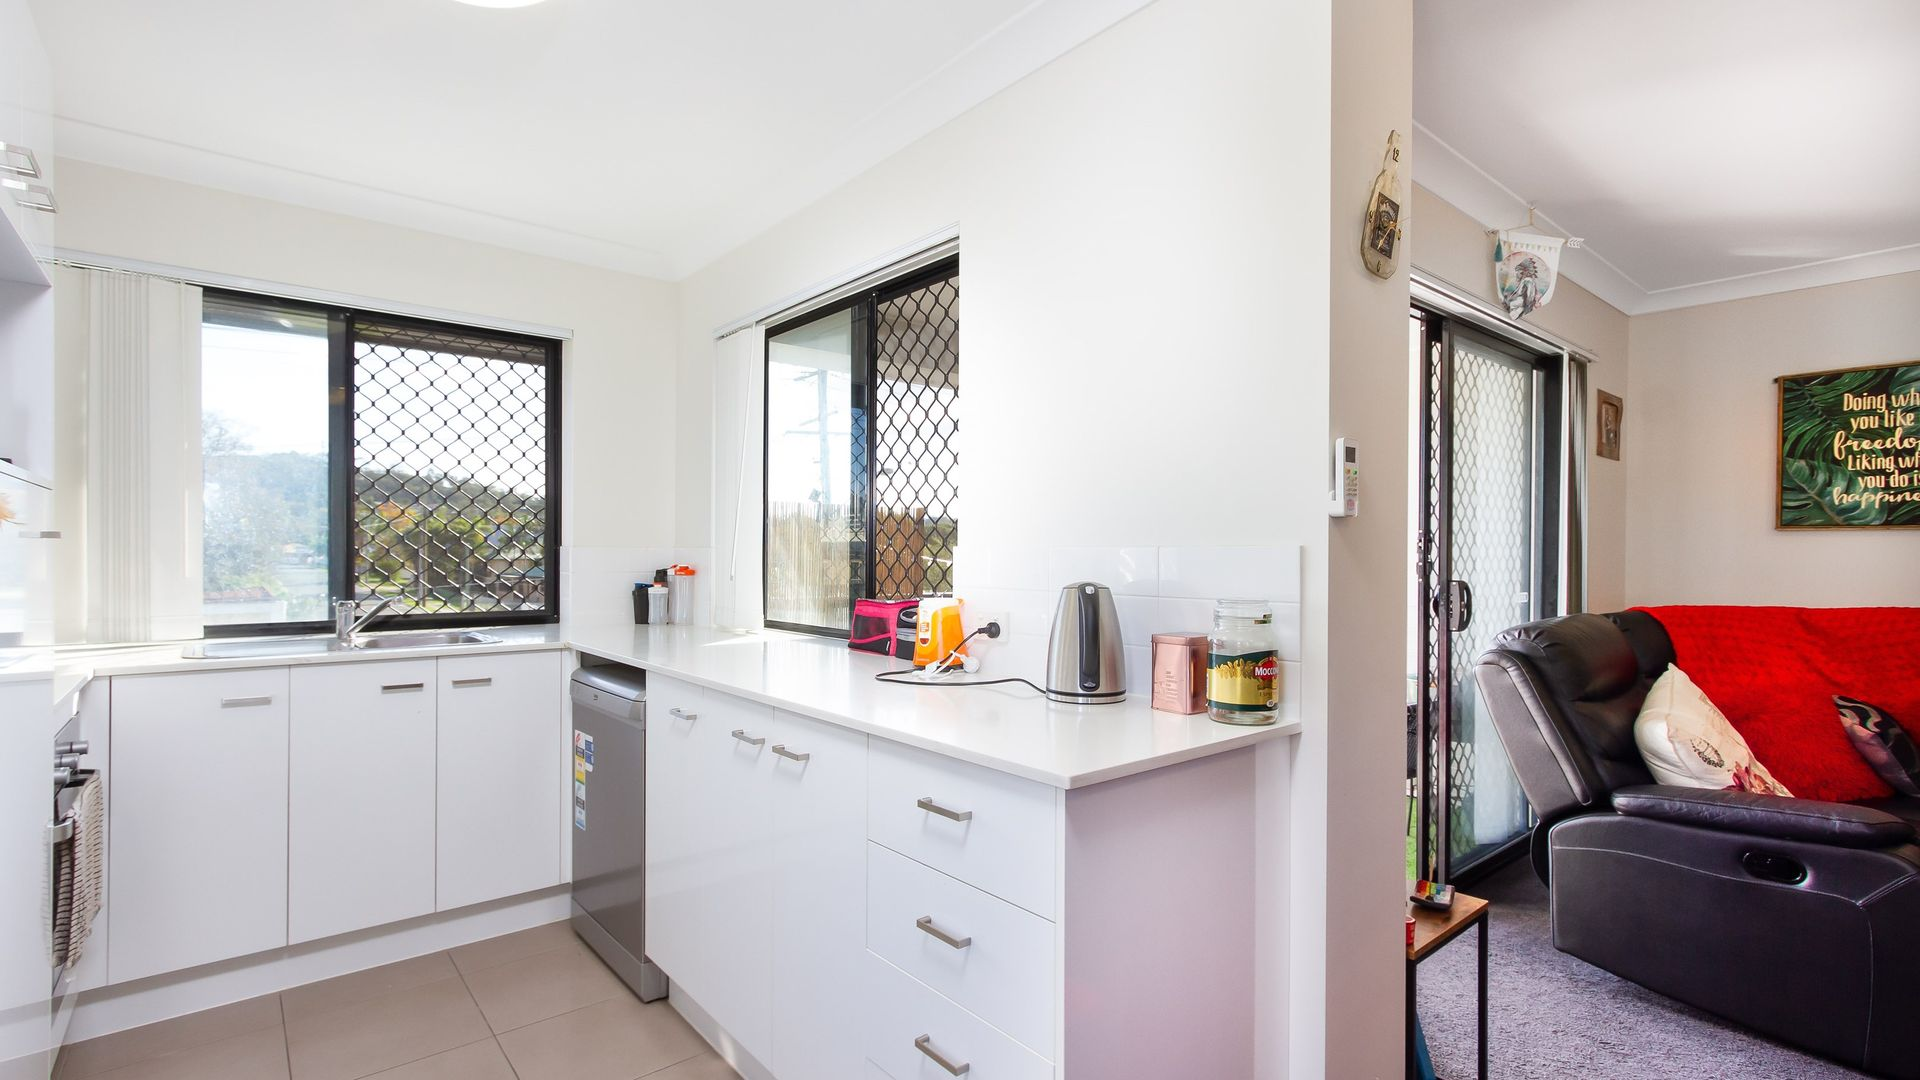 18/115 MAIN STREET, Beenleigh QLD 4207, Image 1